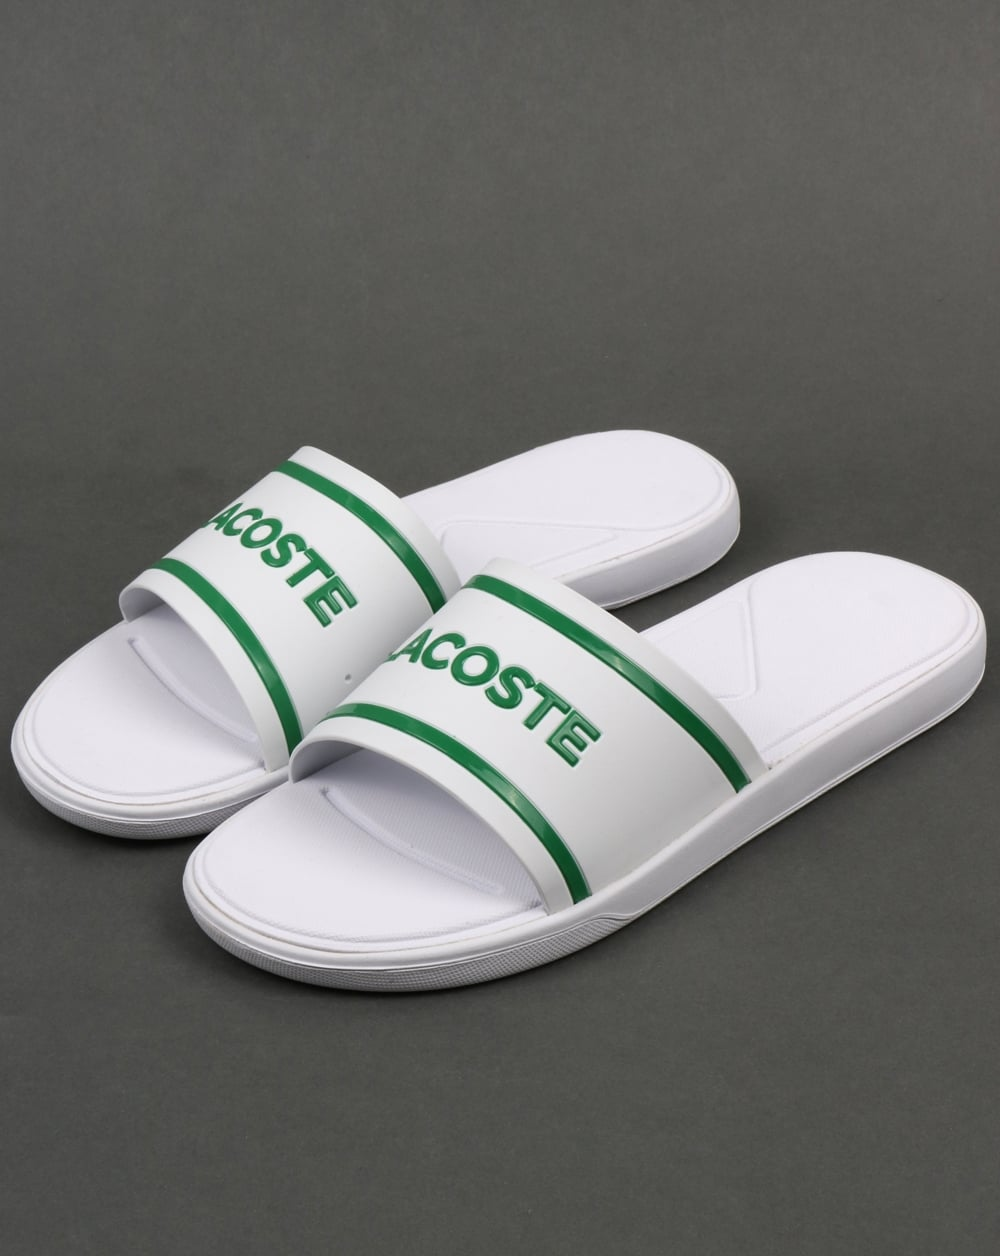 e8a9cd431b6c Above  The Lacoste slides in white green now available at 80s Casual  Classics.